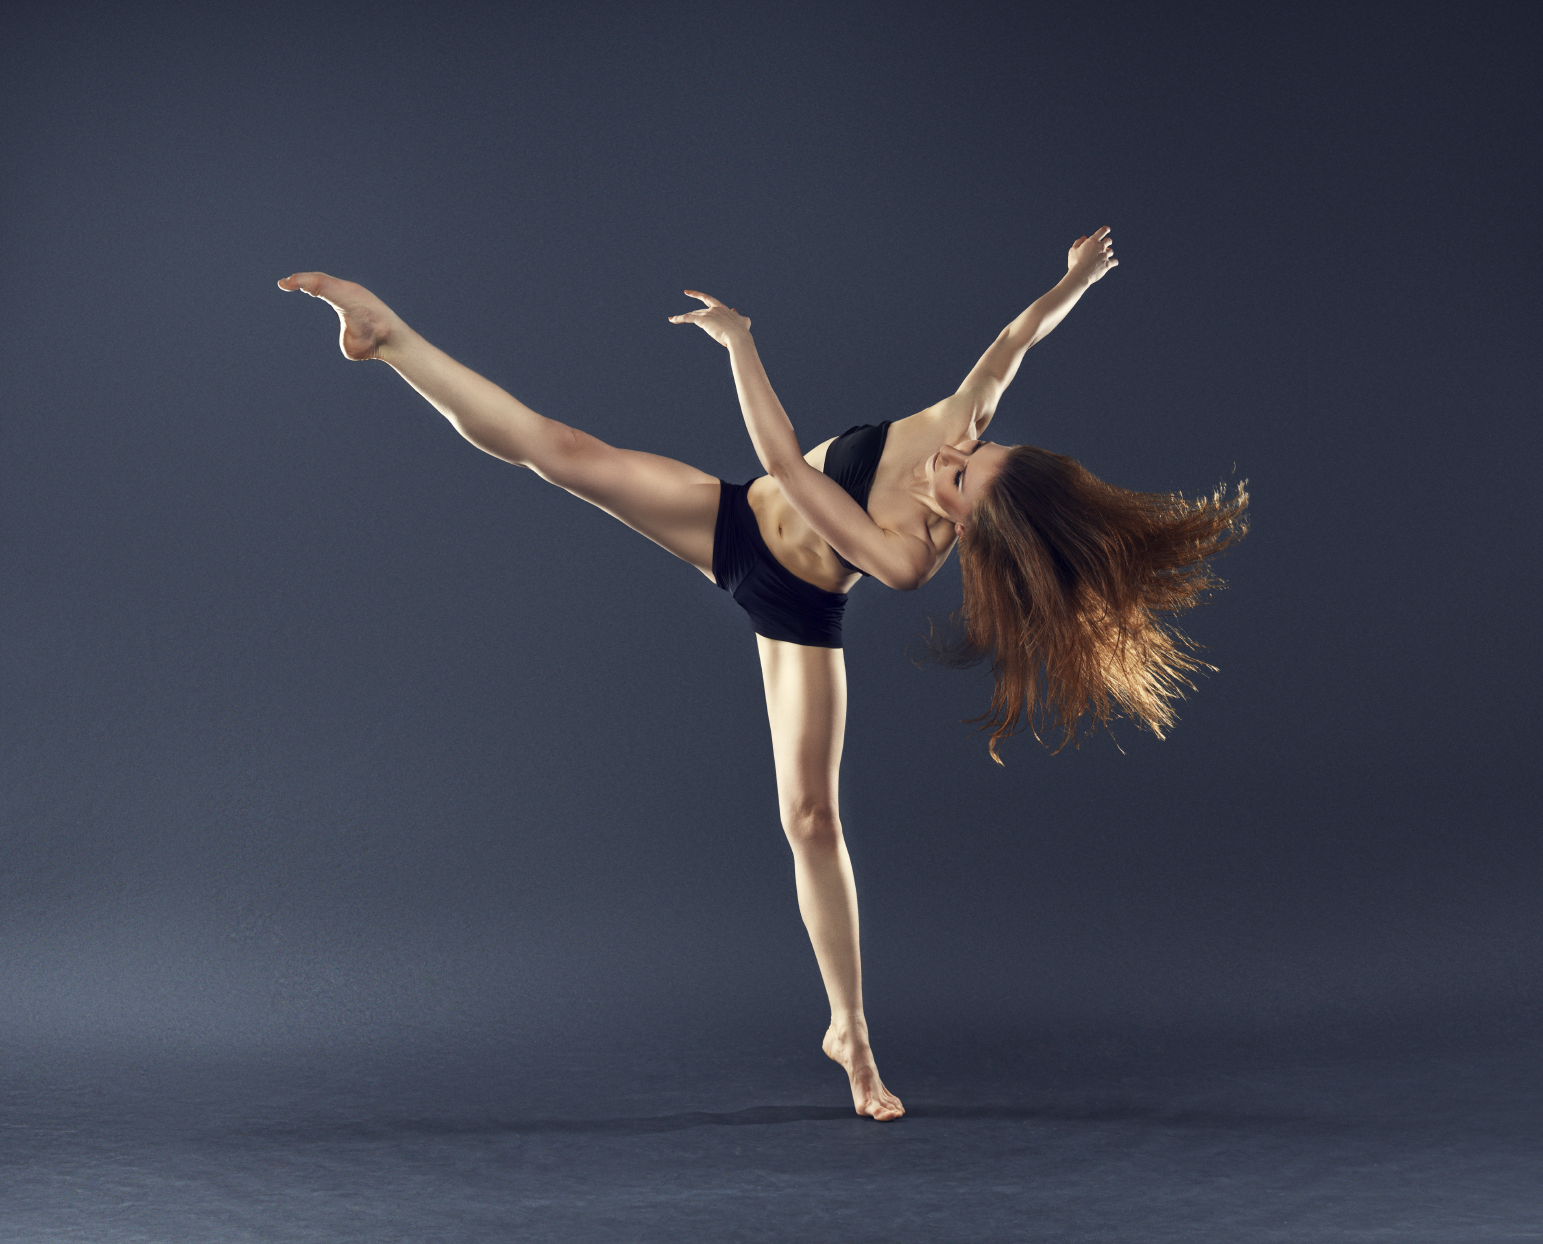 Contemporary dance wallpapers high quality download free contemporary dance desktop wallpaper voltagebd Image collections